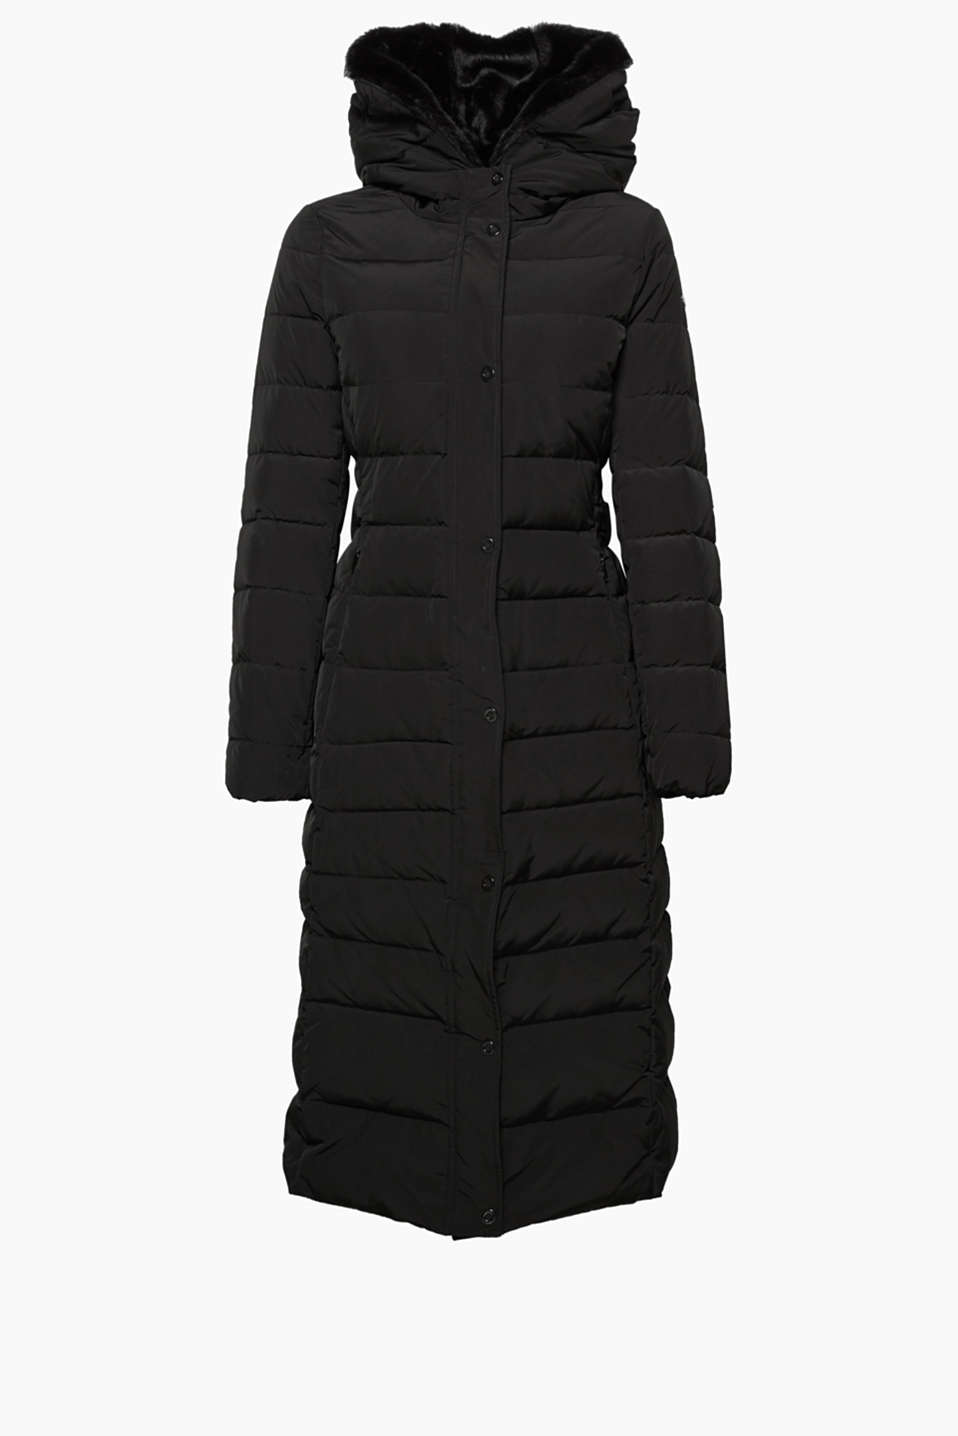 A stylish winter classic! Maxi-coat with an RDS-certified down/feather filling and a faux-fur hood.